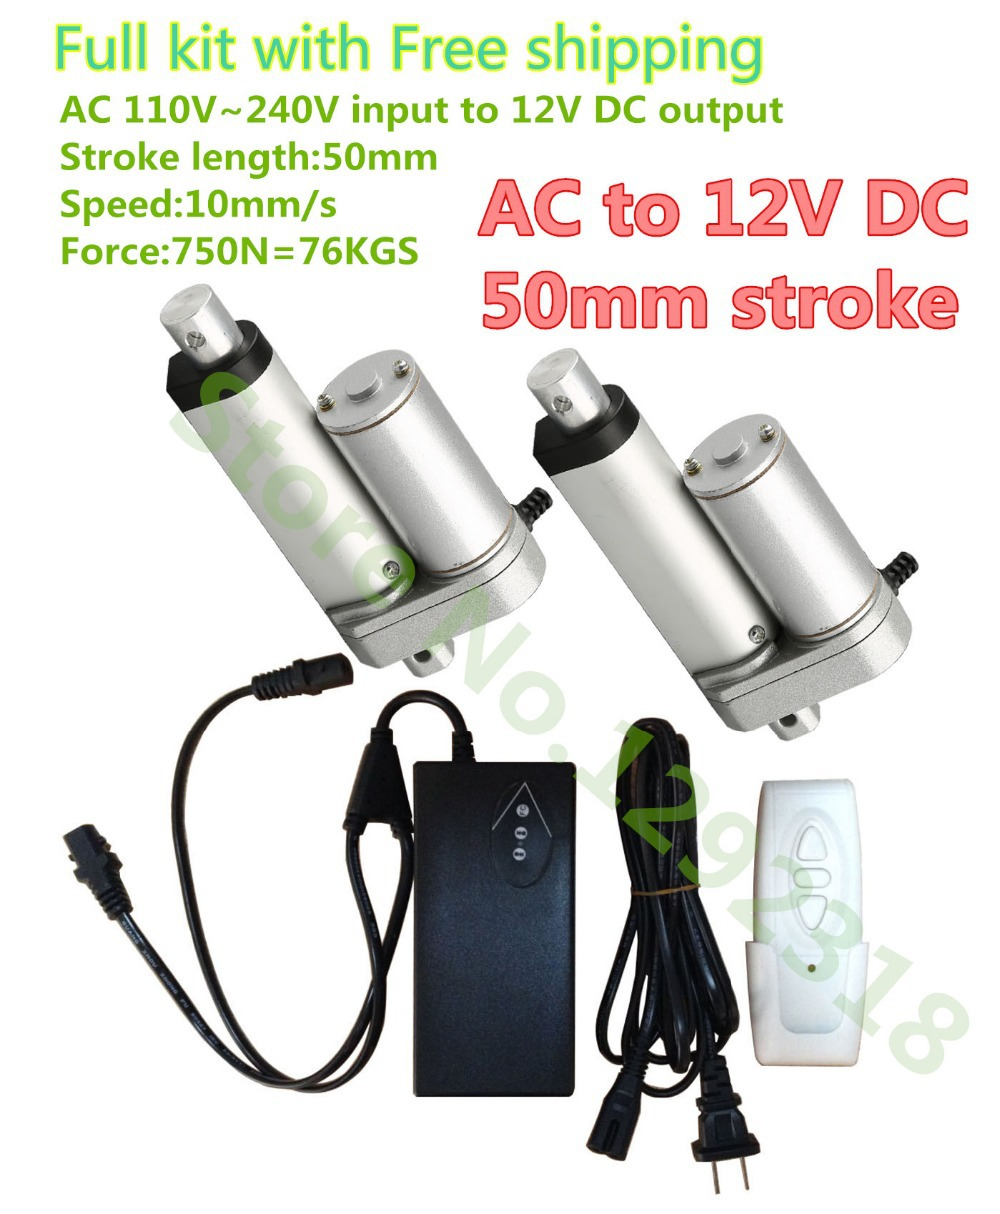 New arrived wireless control system 12V DC linear actuators remotes controller for home appliance etc.(China (Mainland))